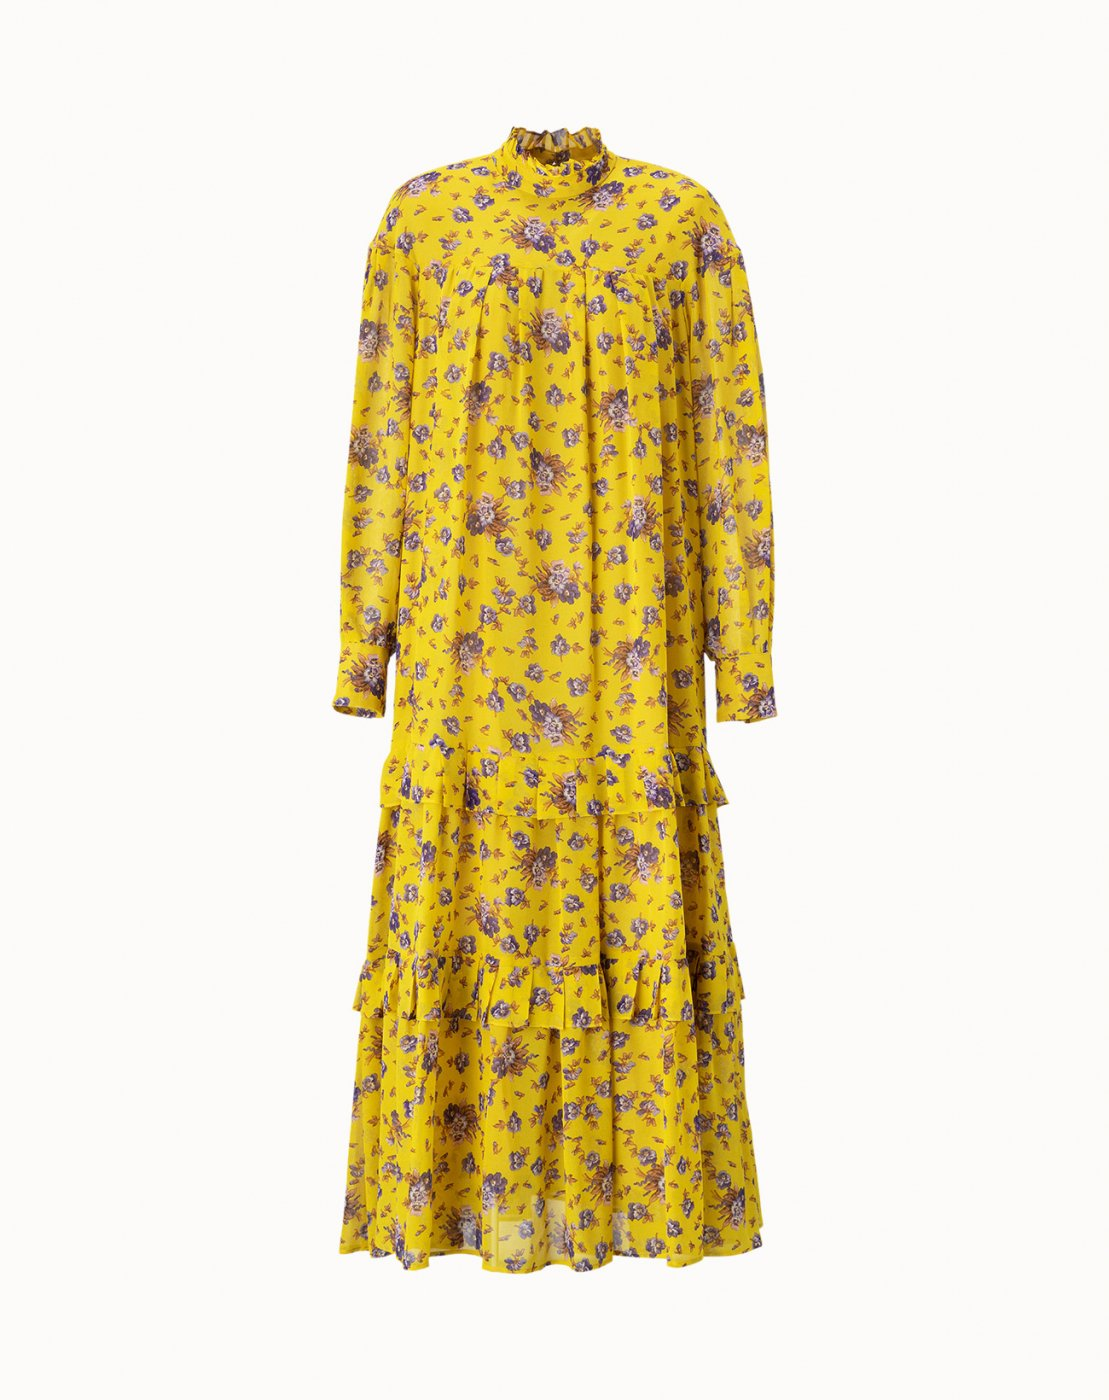 leur logette - <img class='new_mark_img1' src='https://img.shop-pro.jp/img/new/icons47.gif' style='border:none;display:inline;margin:0px;padding:0px;width:auto;' />Motif Flower Dress - Yellow